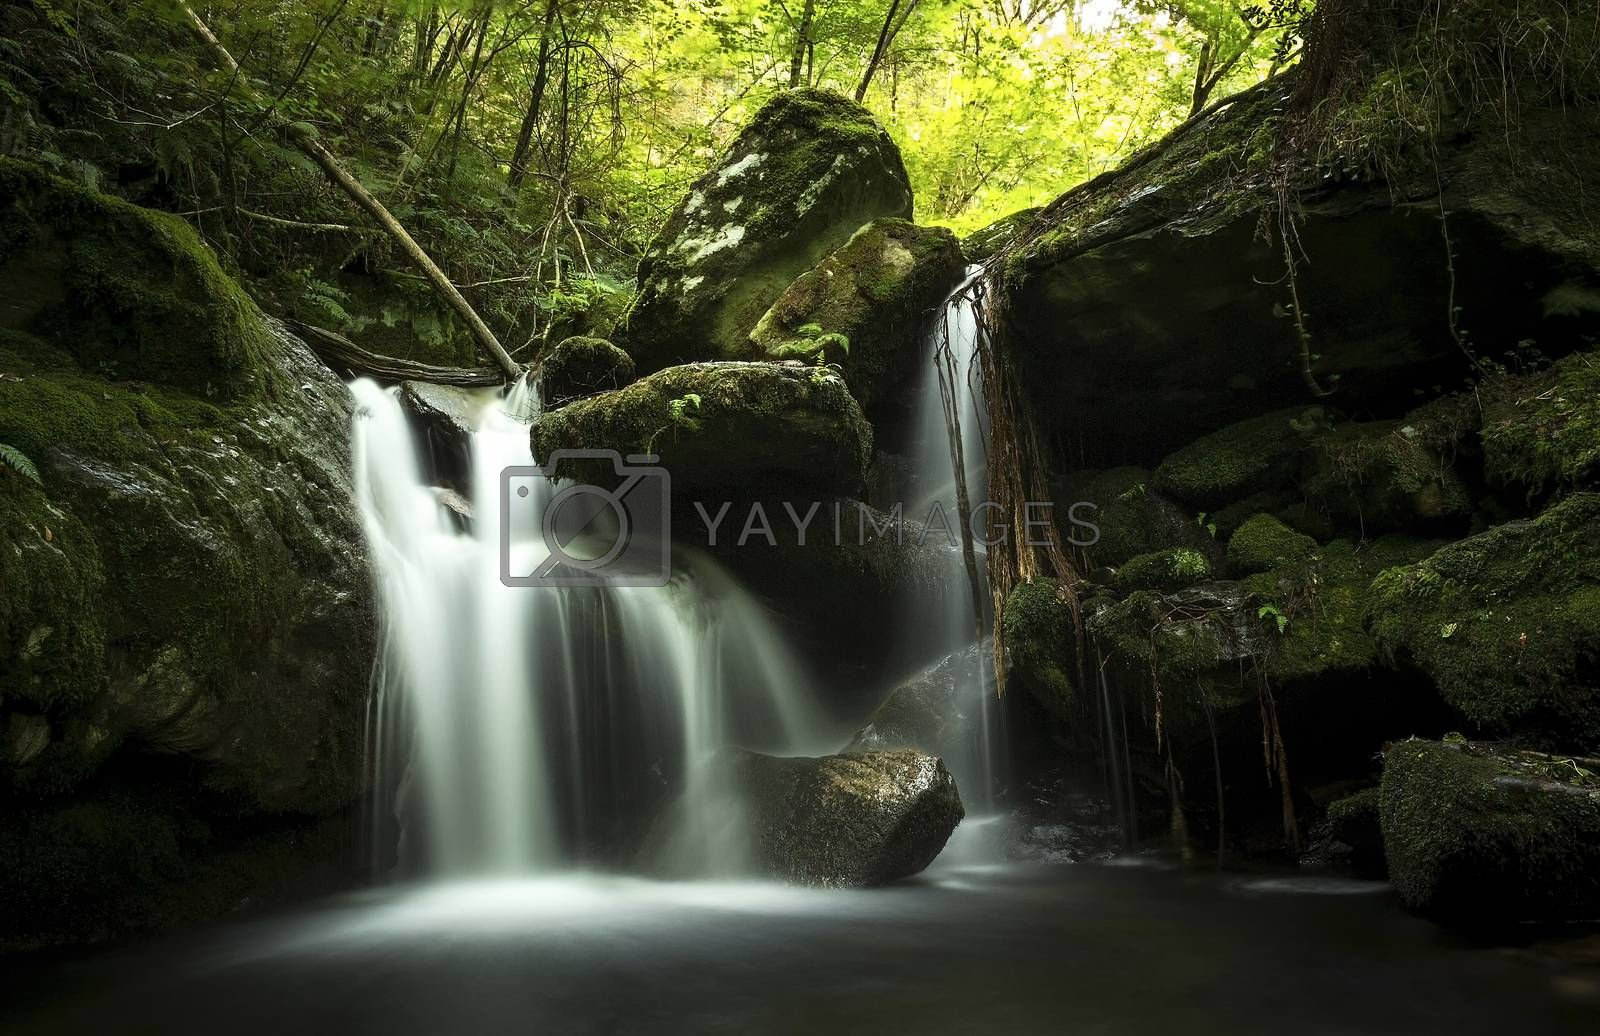 Stream of water between moss-covered rocks in a lush green forest